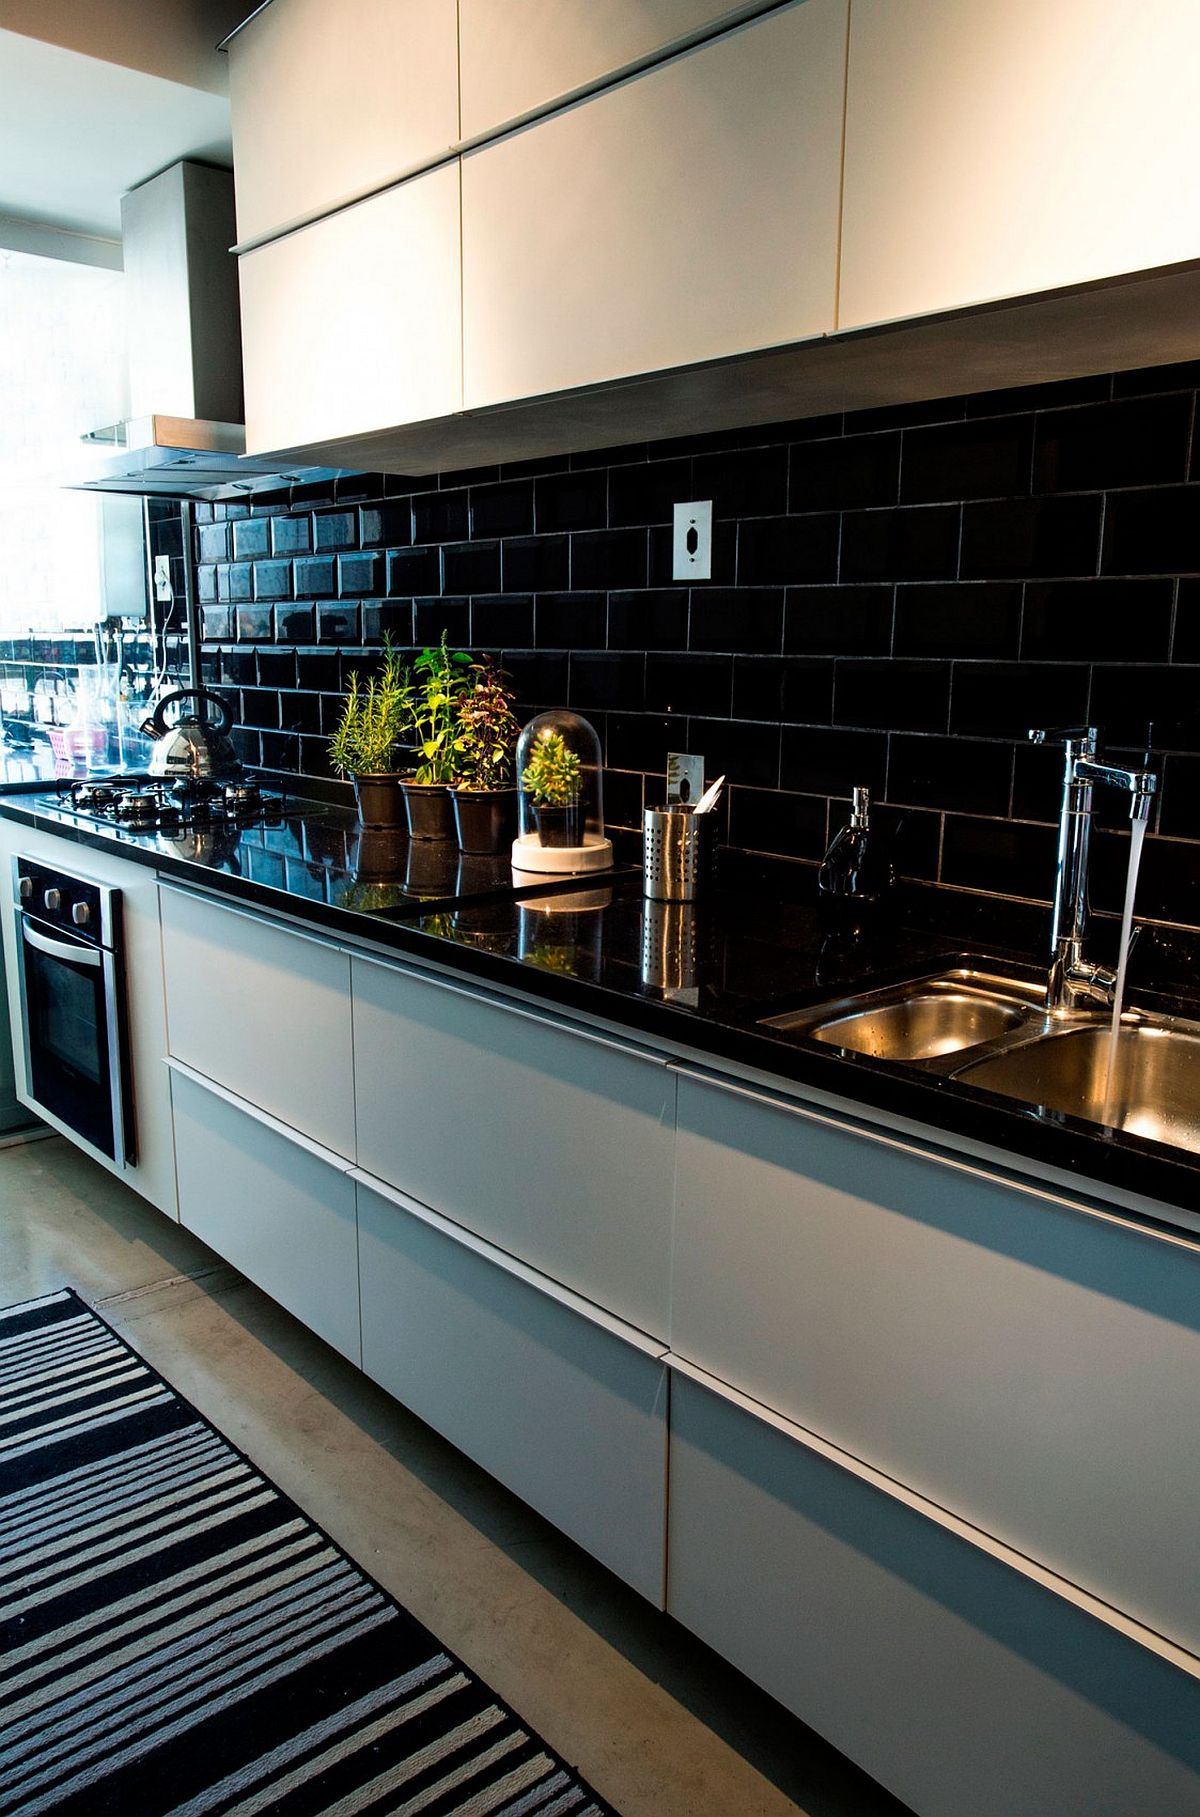 Kitchen with black countertop and black tiled backsplash